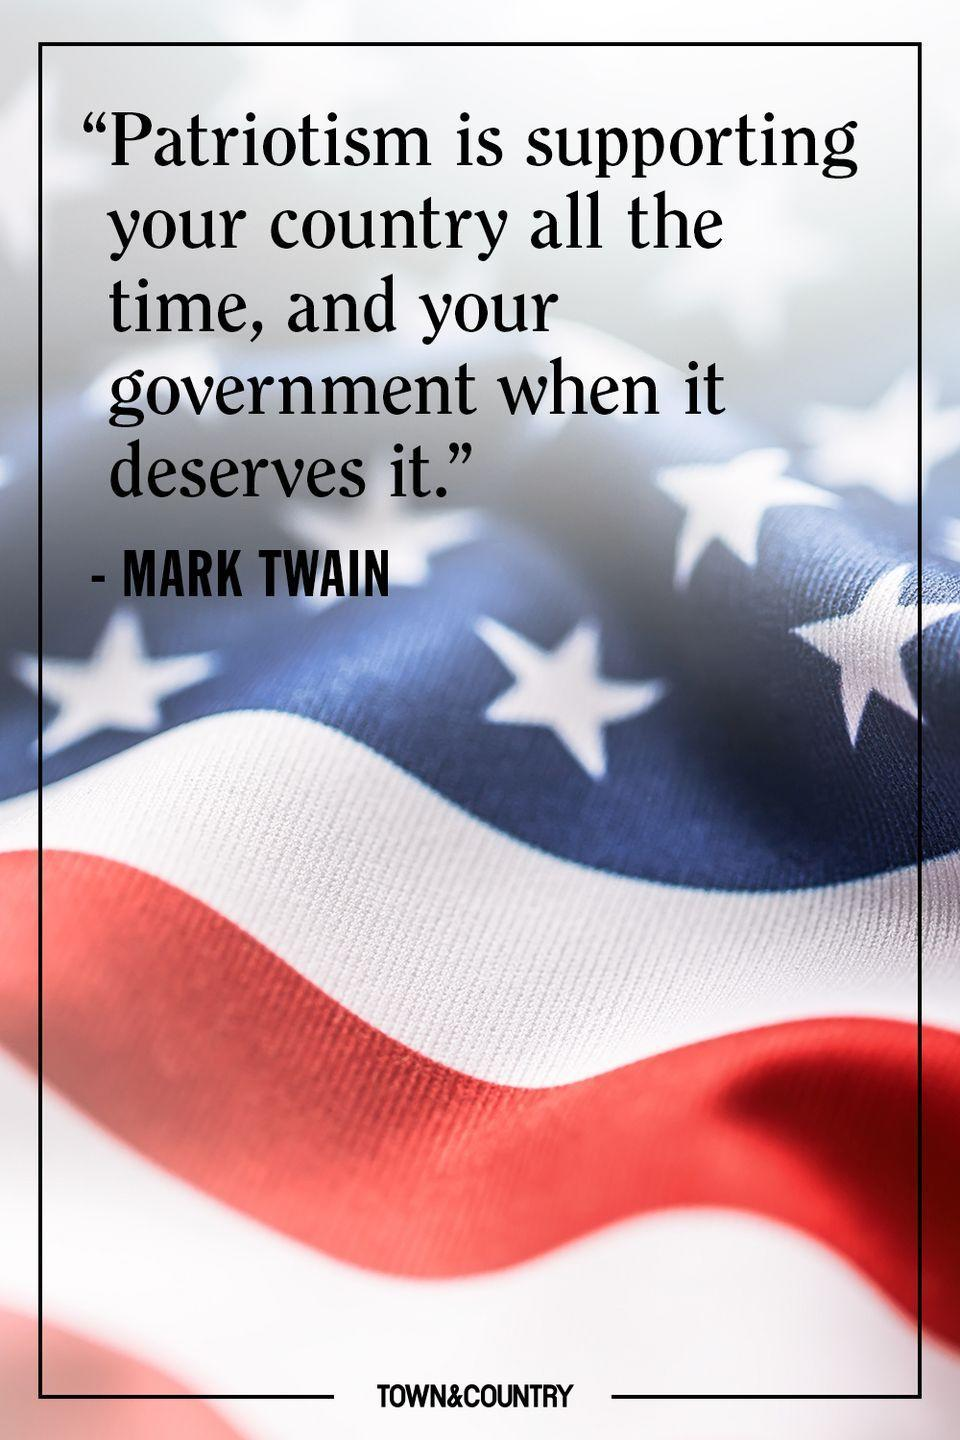 "<p>""Patriotism is supporting your country all the time, and your government when it deserves it.""</p><p>– Mark Twain</p>"